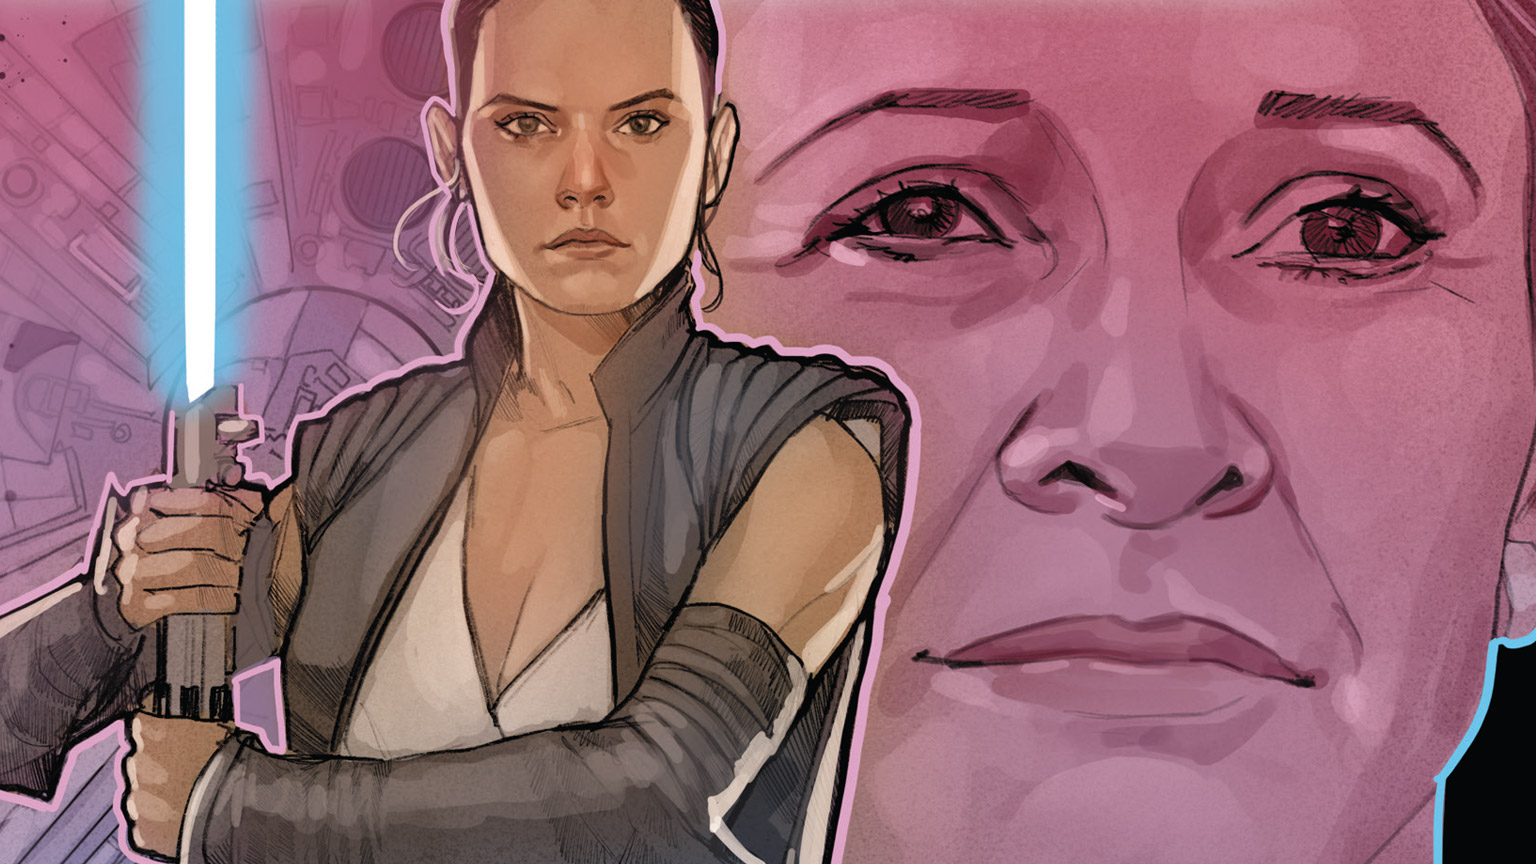 Star Wars: Age of Resistance - Rey #1 cover image featuring Rey and Leia